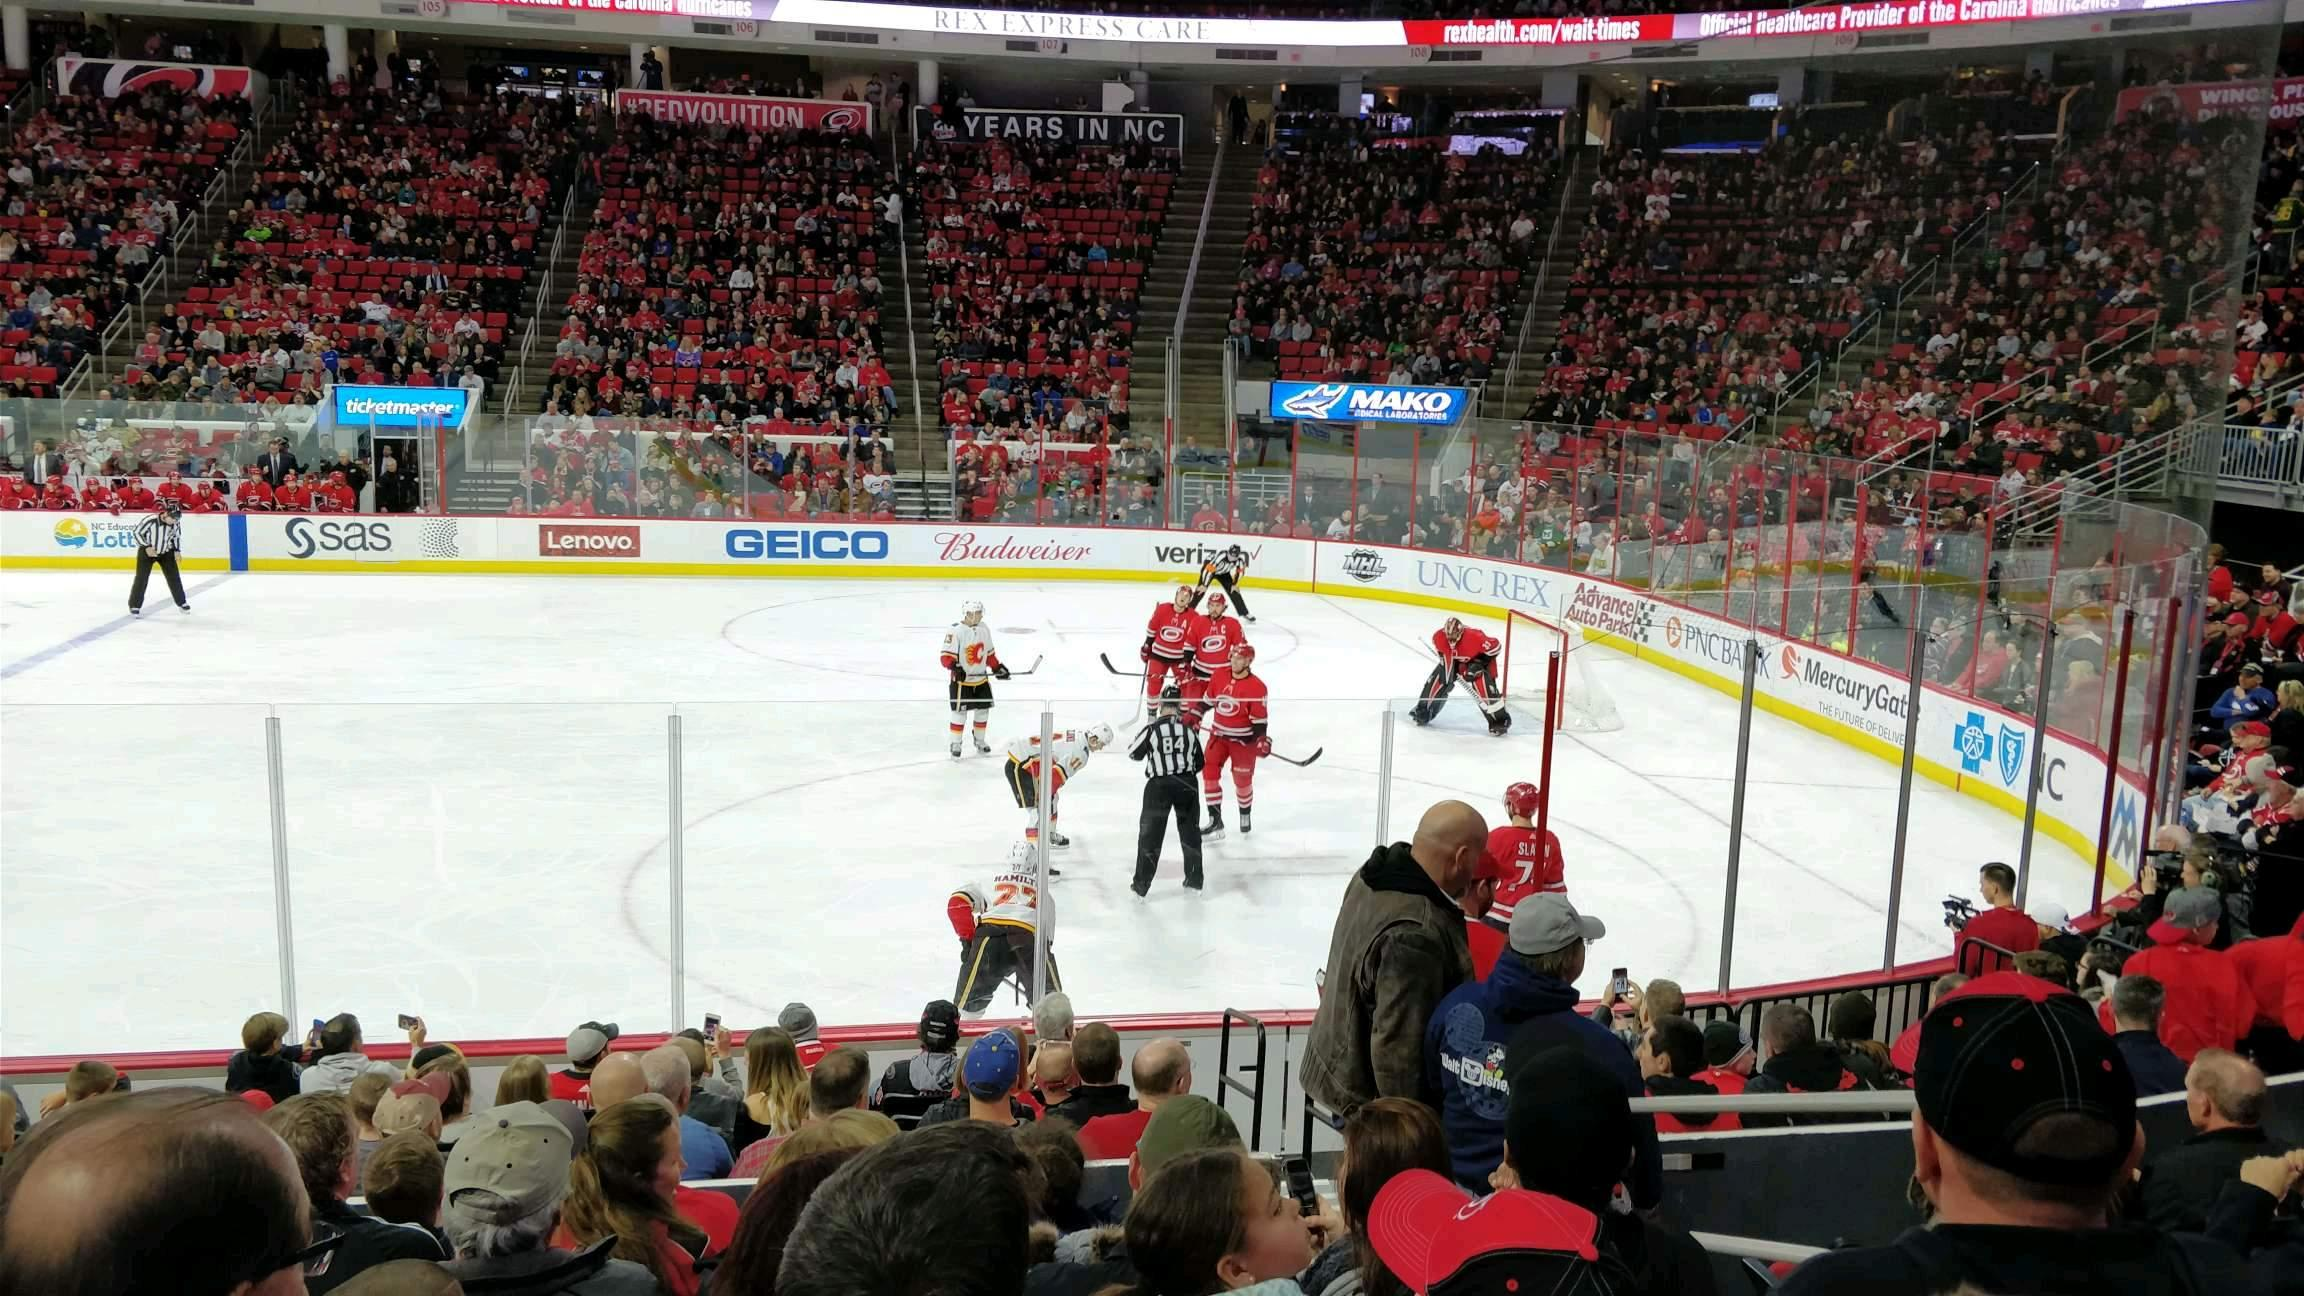 PNC Arena Section 117 Row M Seat 3